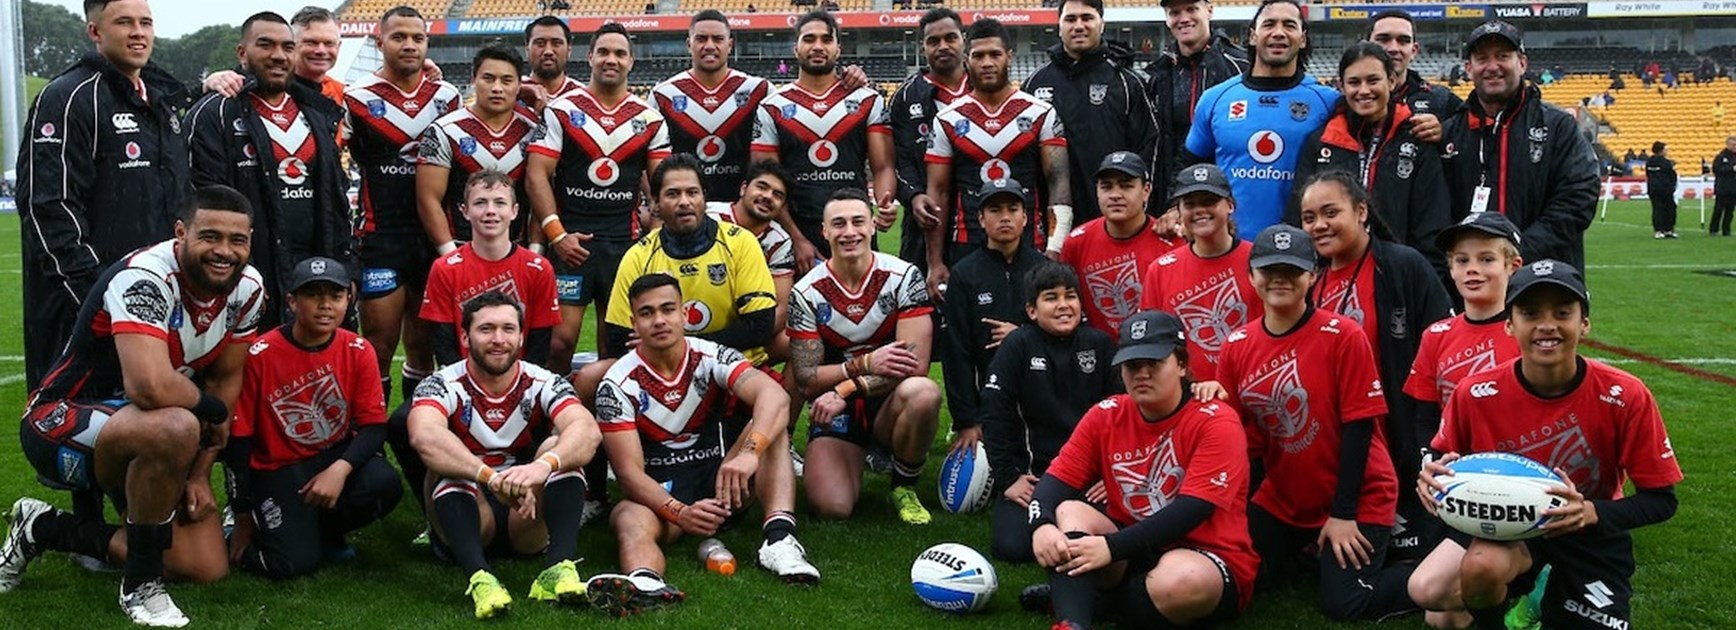 Vodafone Warriors ISP side under new coach in 2018